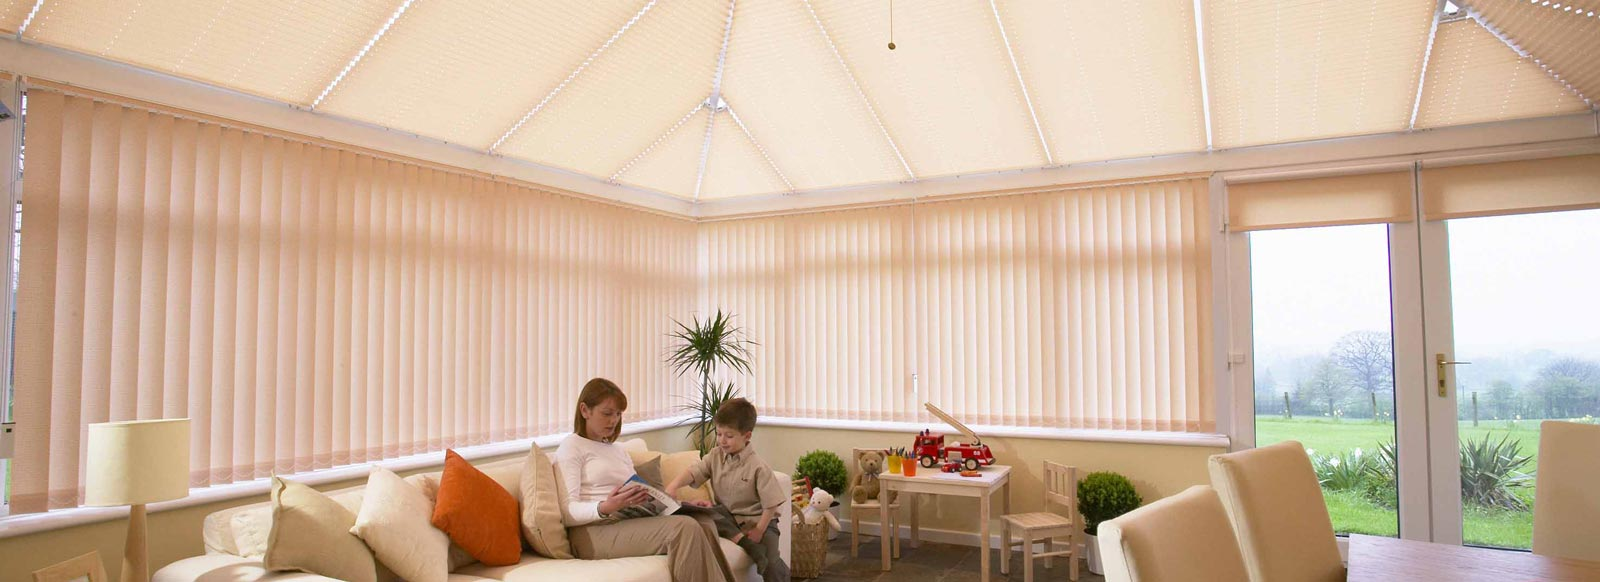 conservatory-roof-pleated-blinds-1600